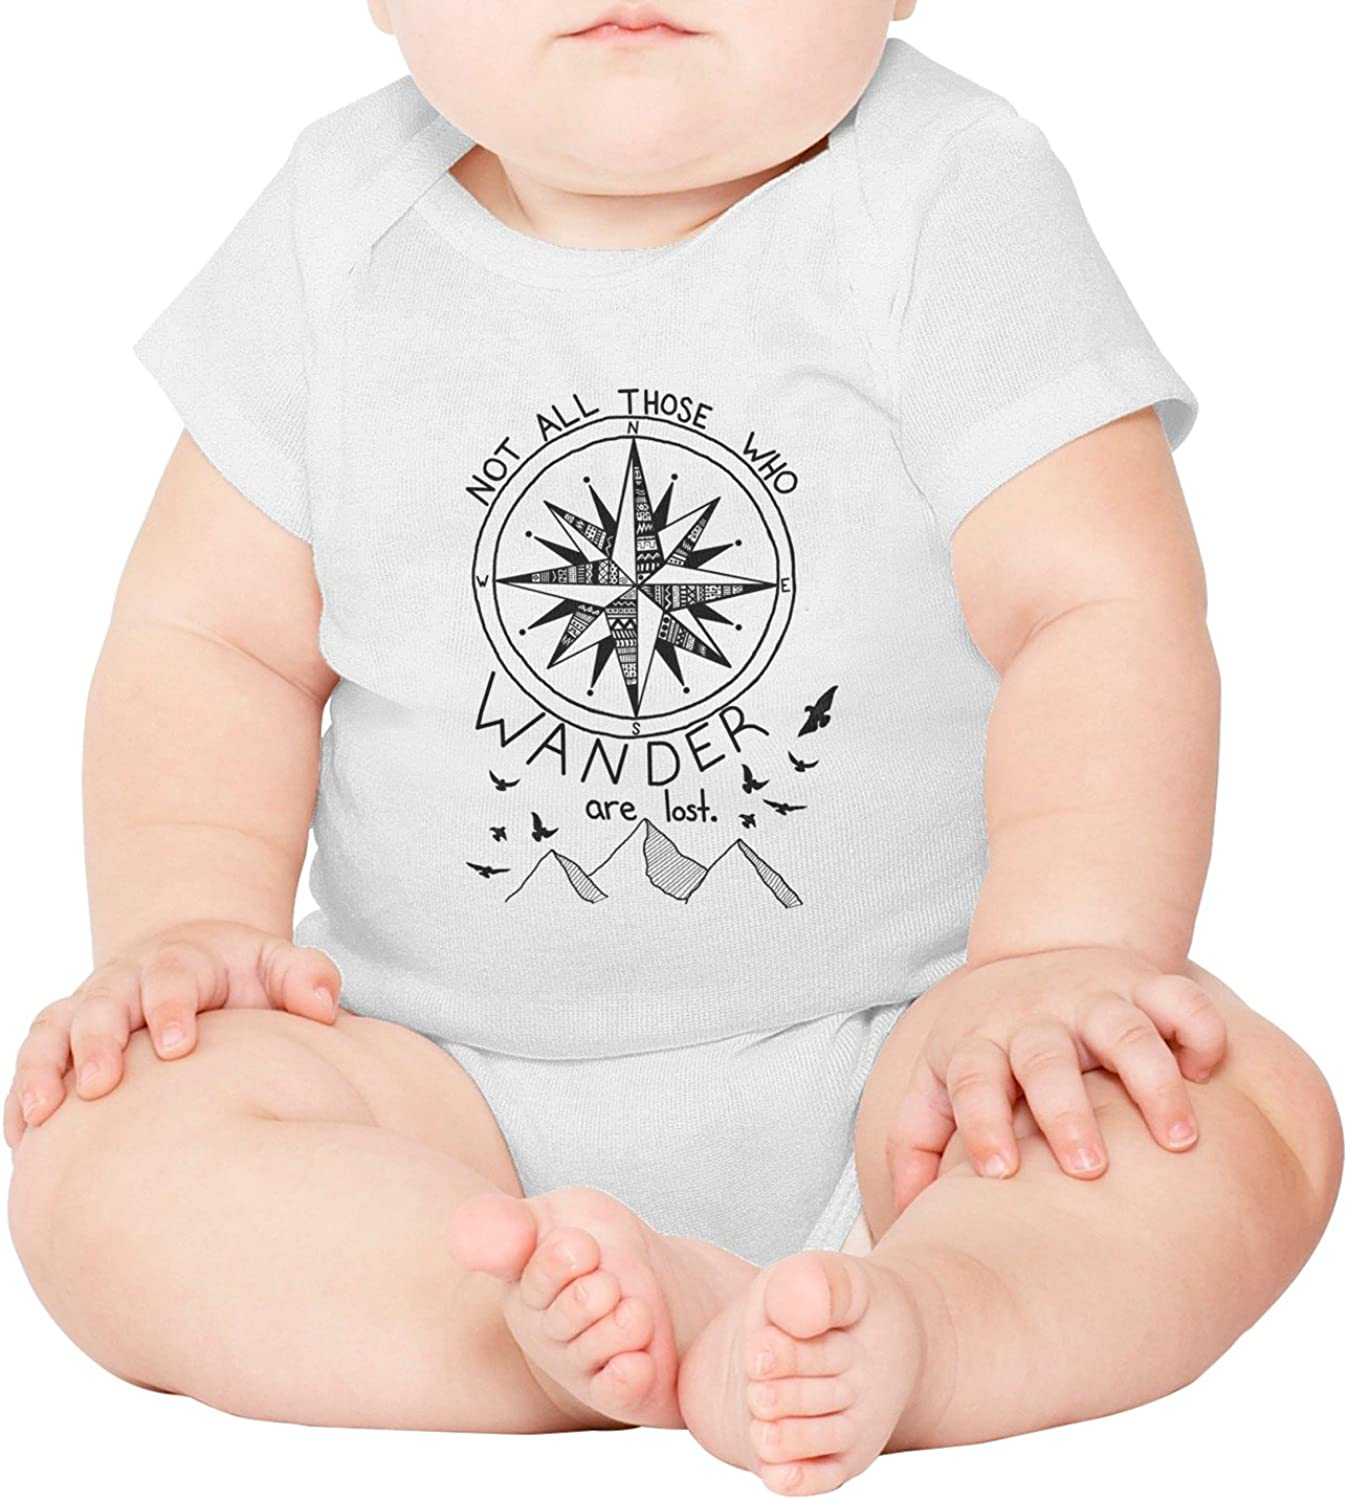 M2VIK9 Baby Romper Short Sleeve Clothes Jumpsuit Dragons Ice and Fire Bodysuit Playsuit Outfits